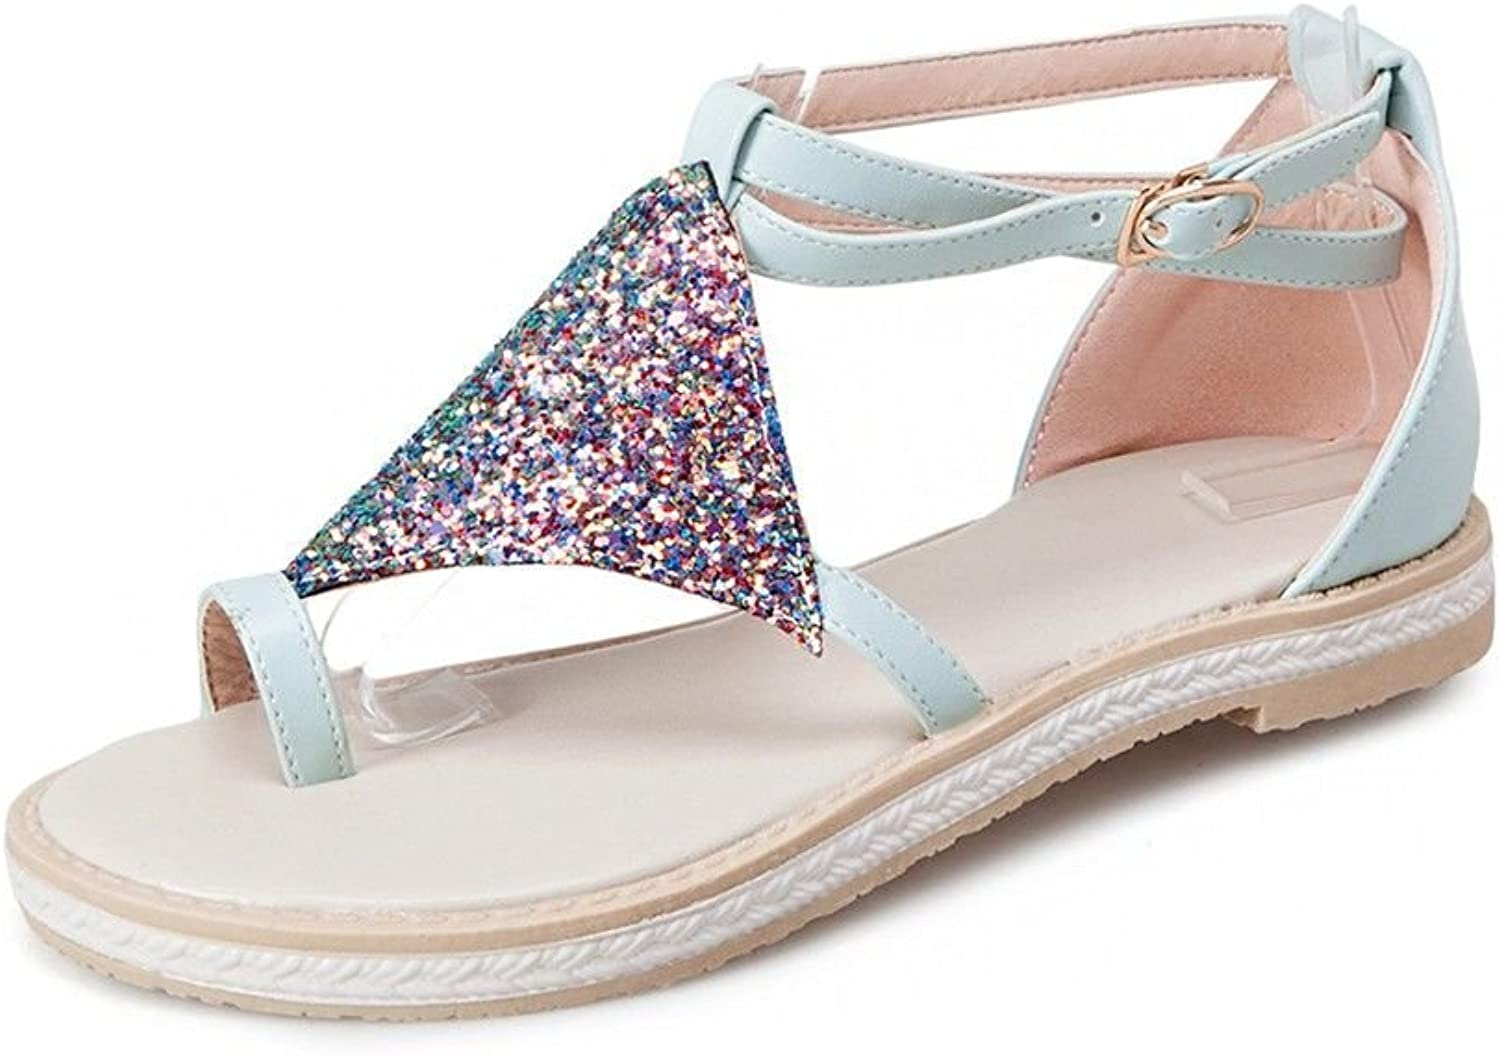 In The Summer, Low and Sweet Leisure Students Clip Toe Sandals